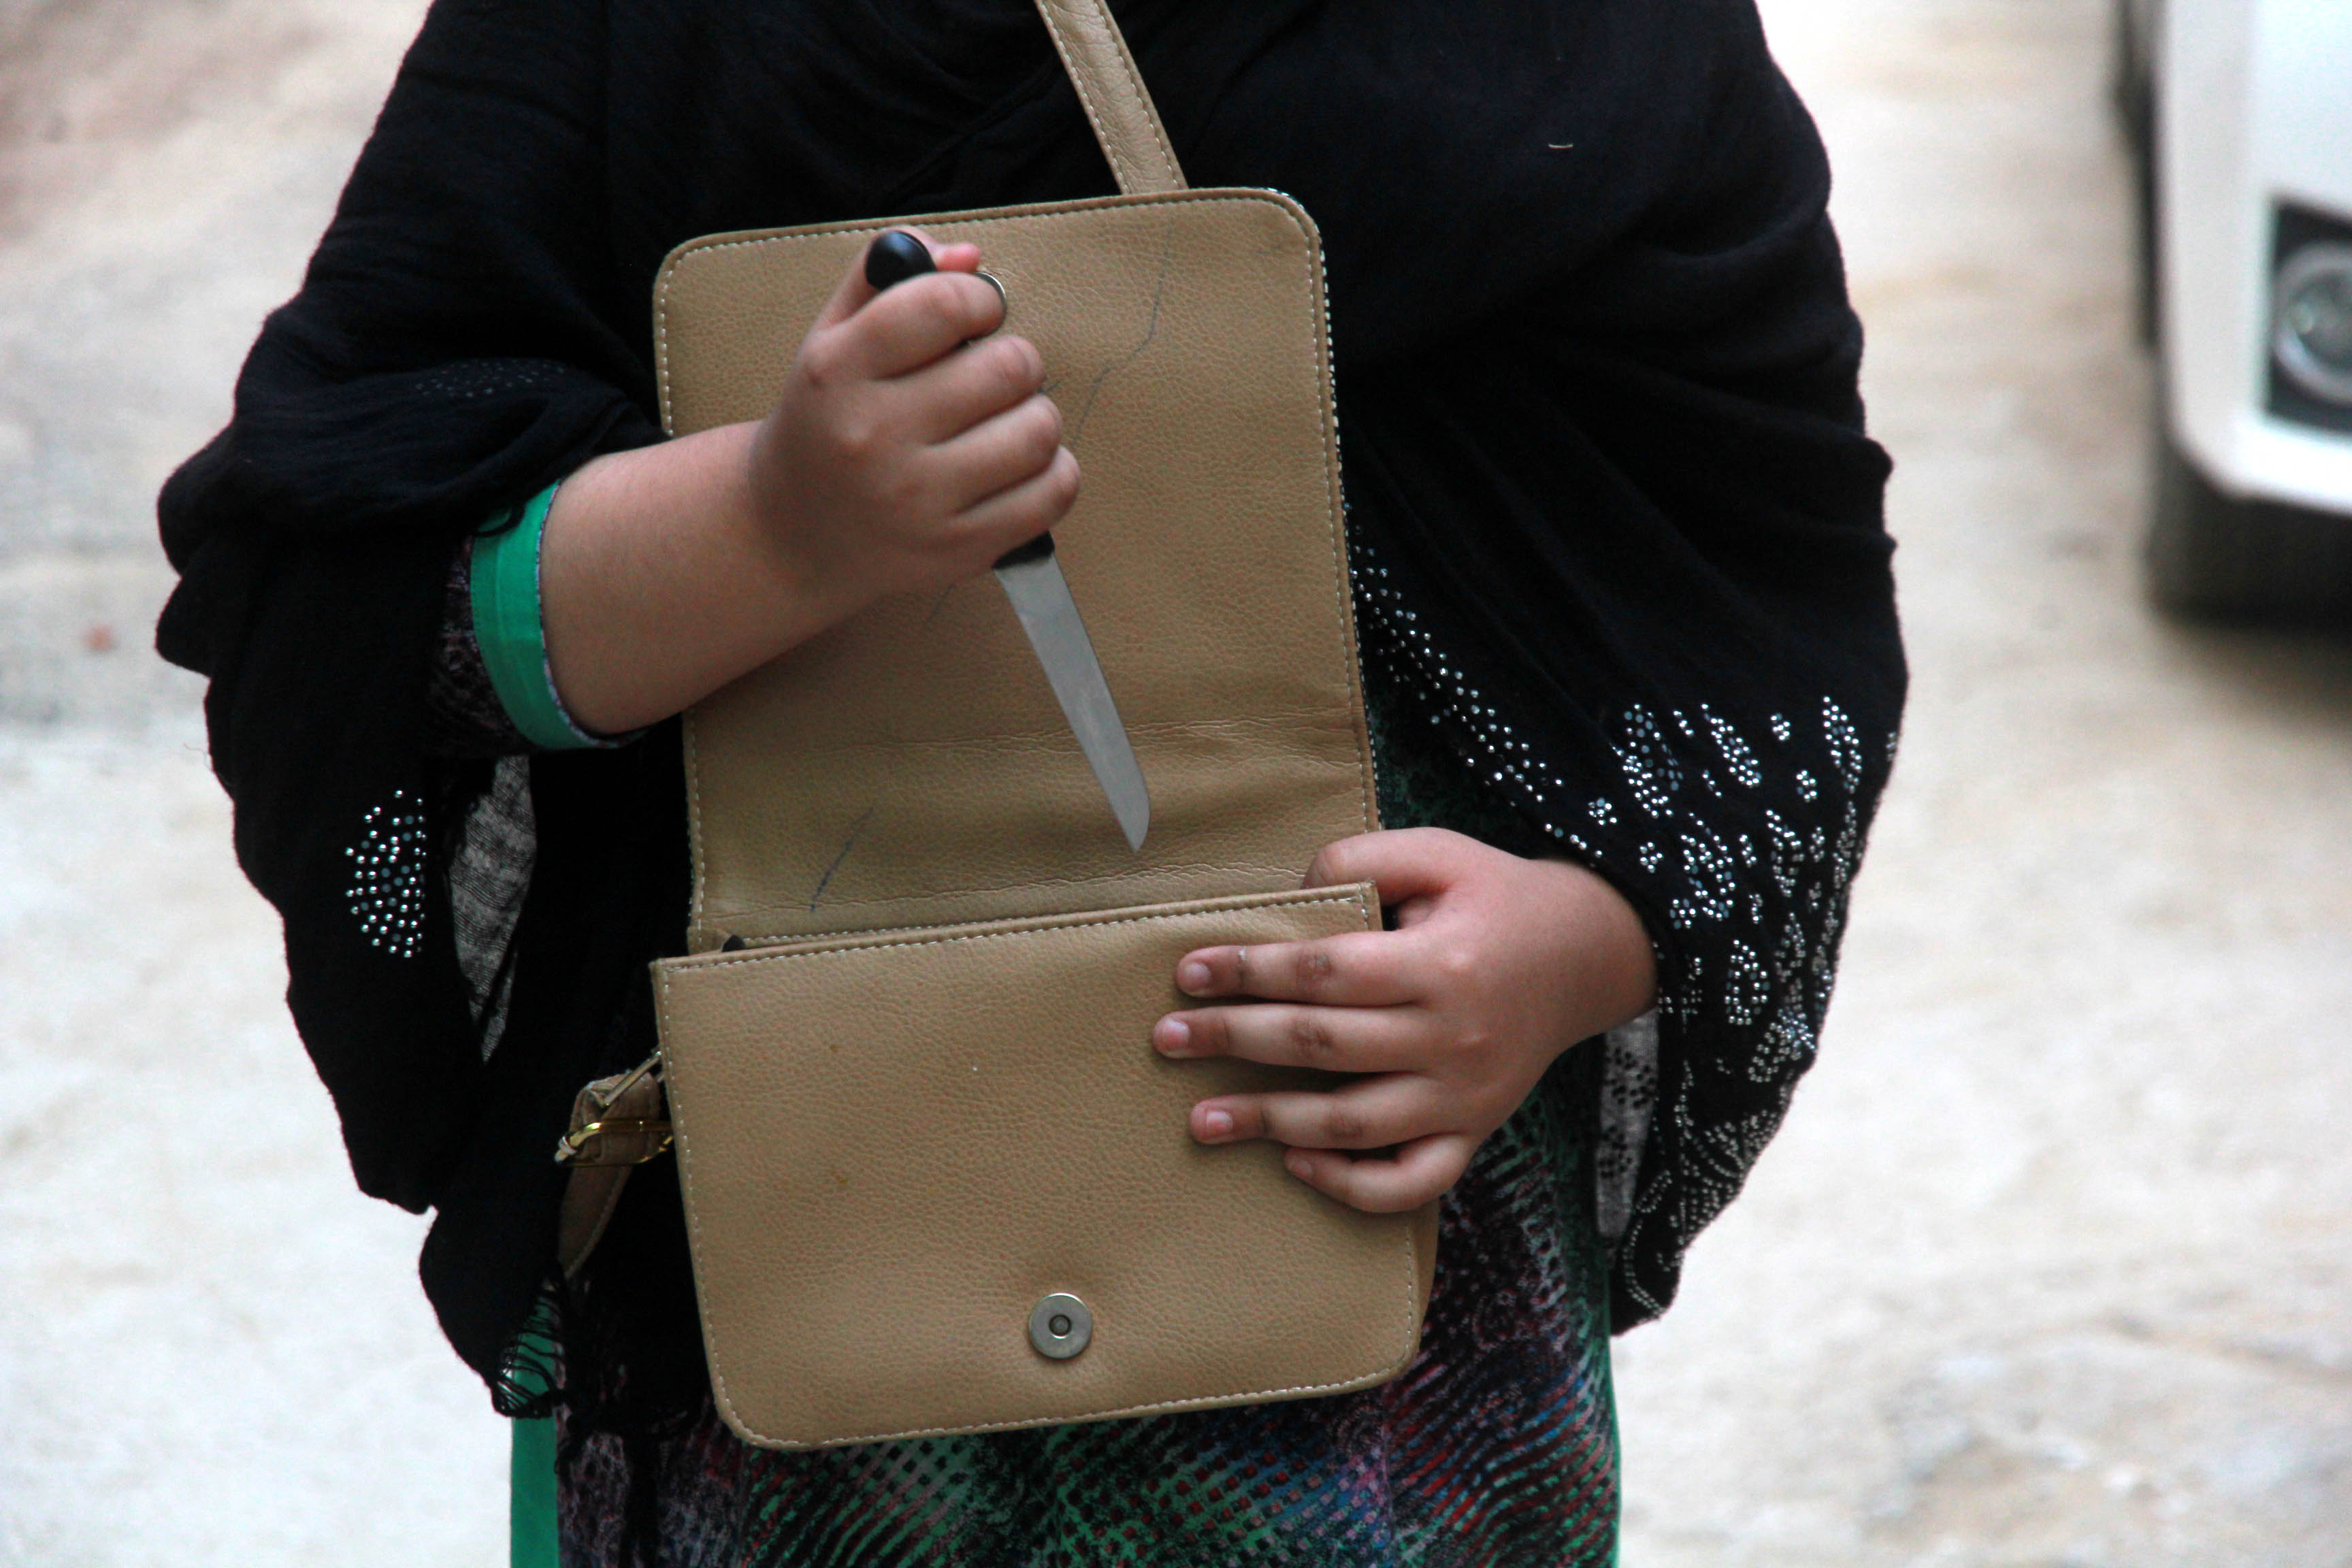 women are carrying knives in their bags to protect themselves against the knifeman photo express